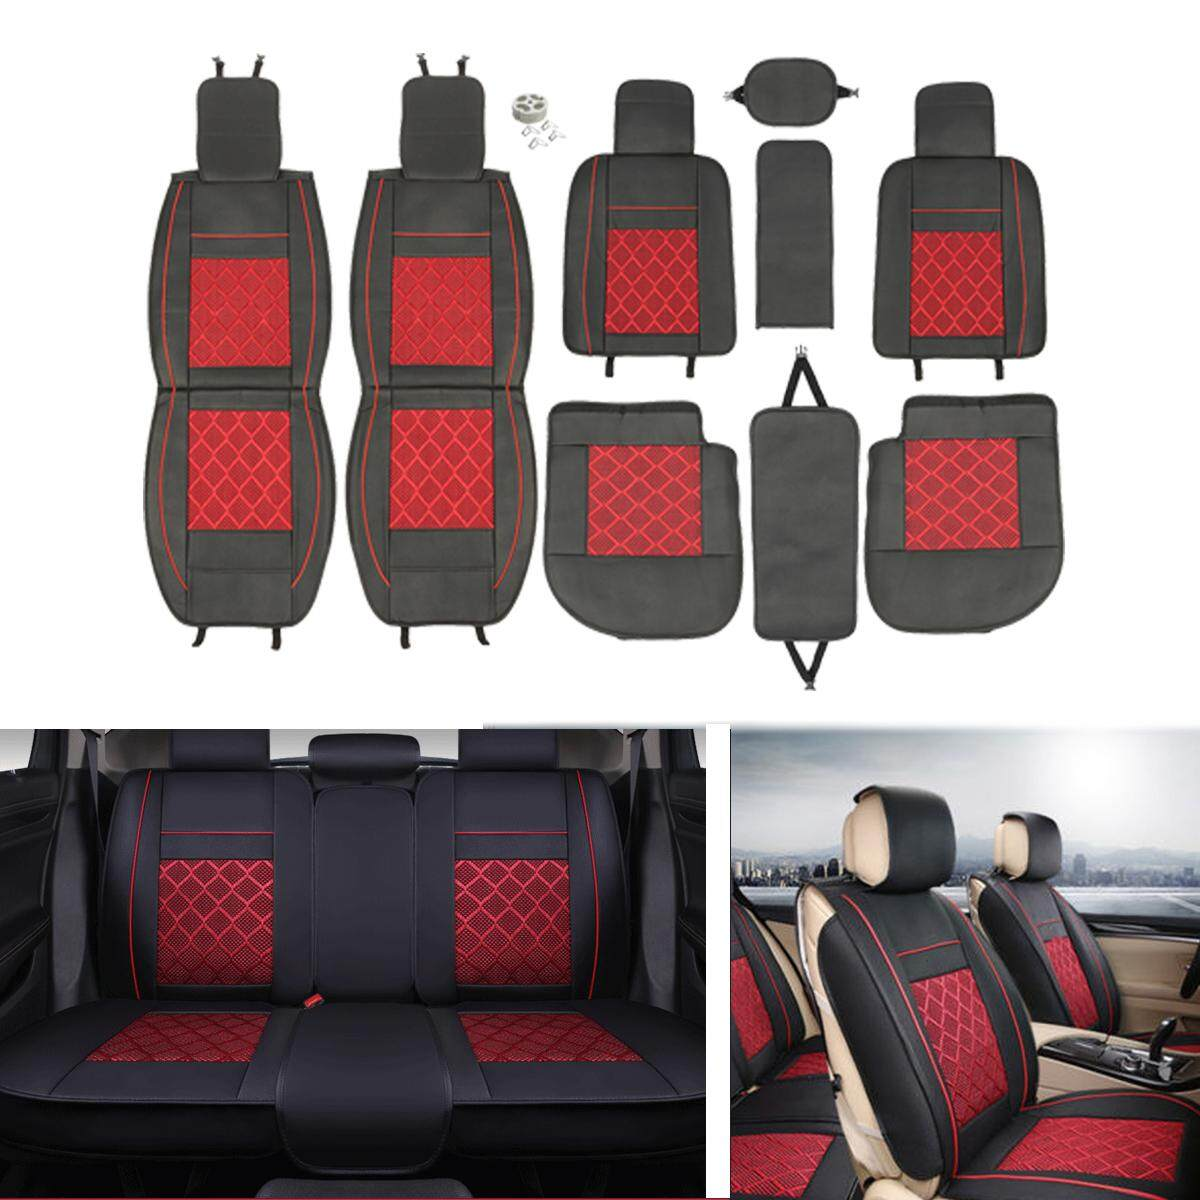 Buy Sell Cheapest Comfort Car Set Best Quality Product Deals Mercedes Benz Sprinter Karpet Mobil Deluxe 12mm Mat Full Kulit Pu Universal Mesh Penutup Jok Depan Dan Belakang 5 Hitam